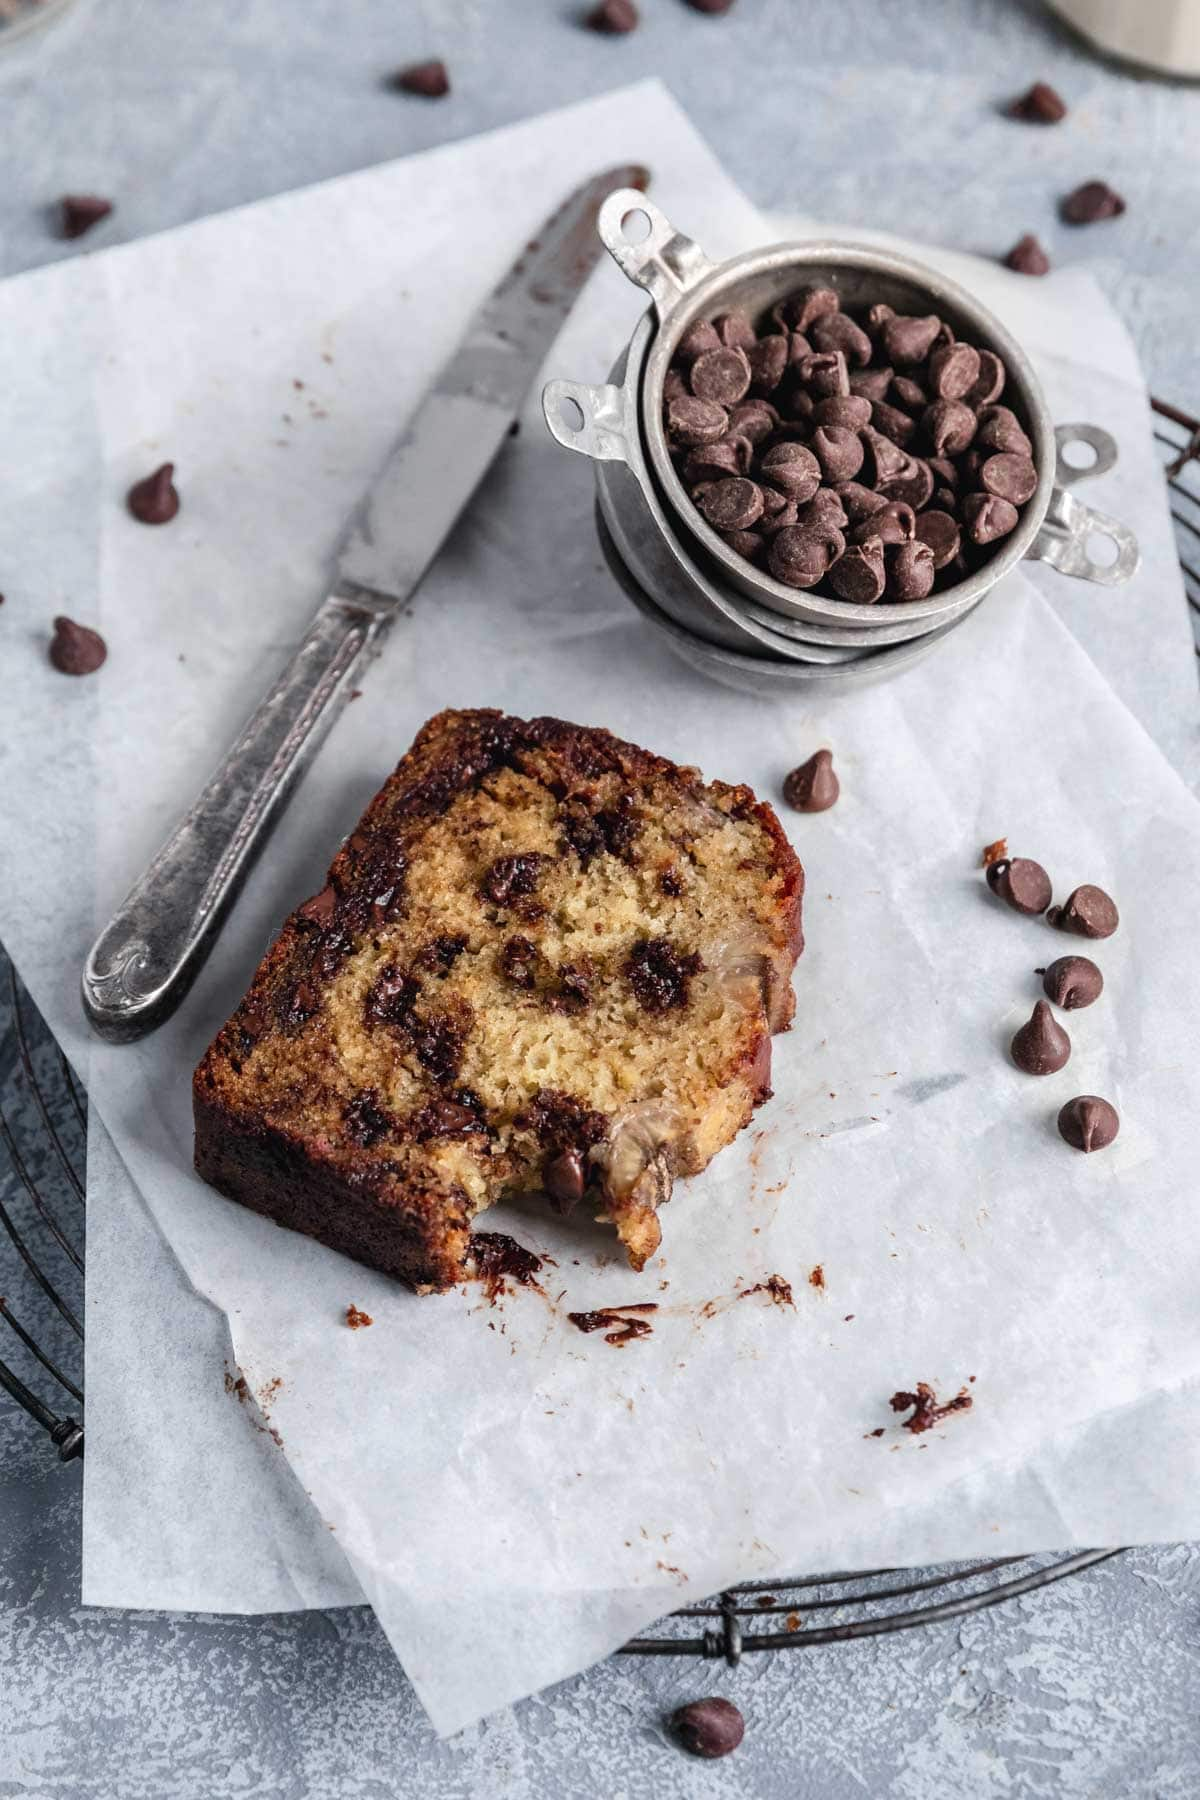 slice of chocolate chip banana bread